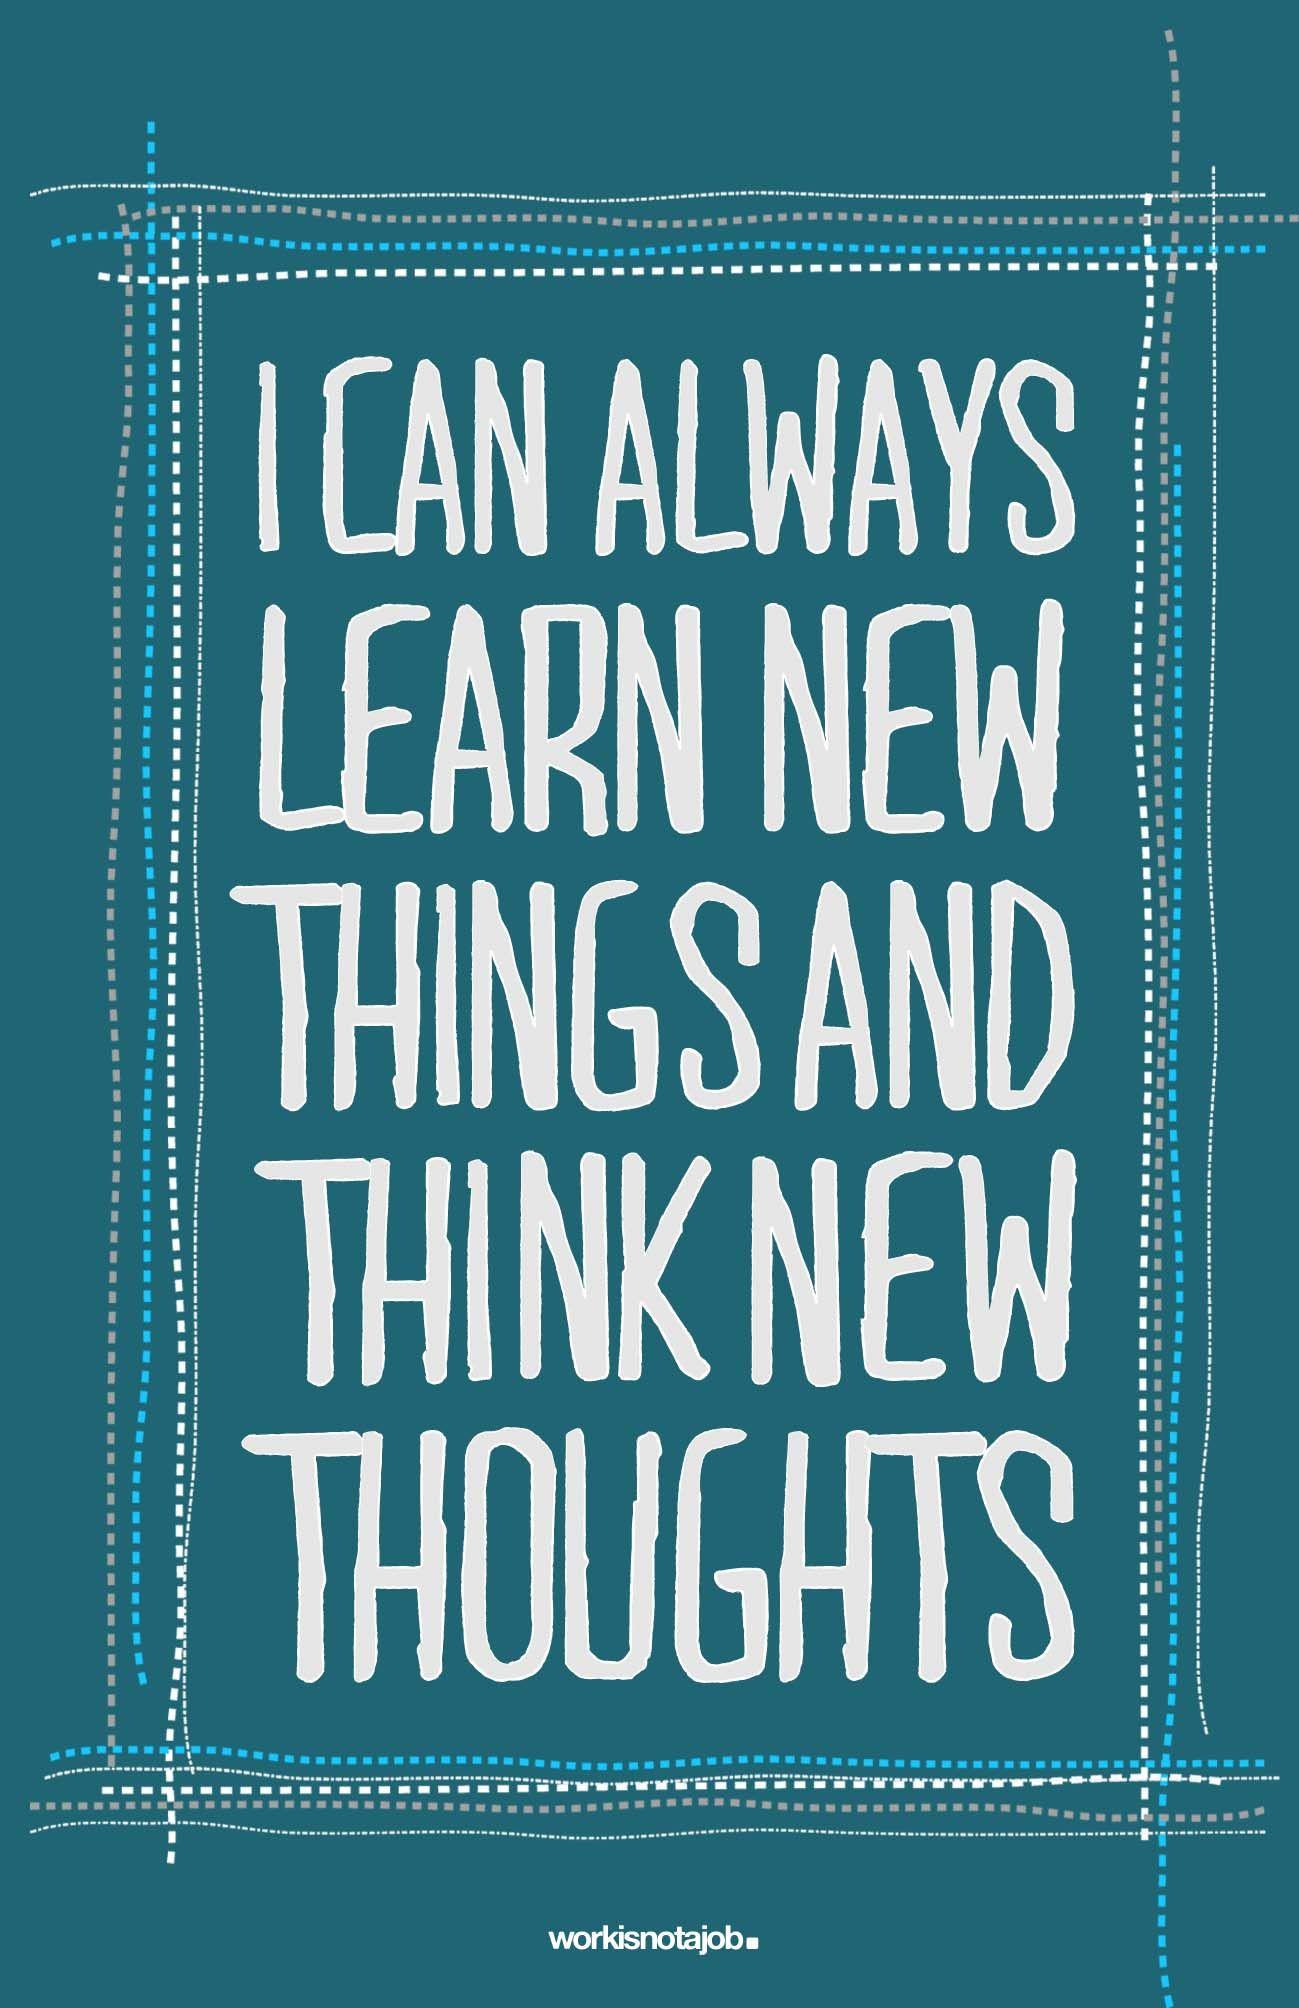 We This Quote I Can Always Learn New Things And Think New